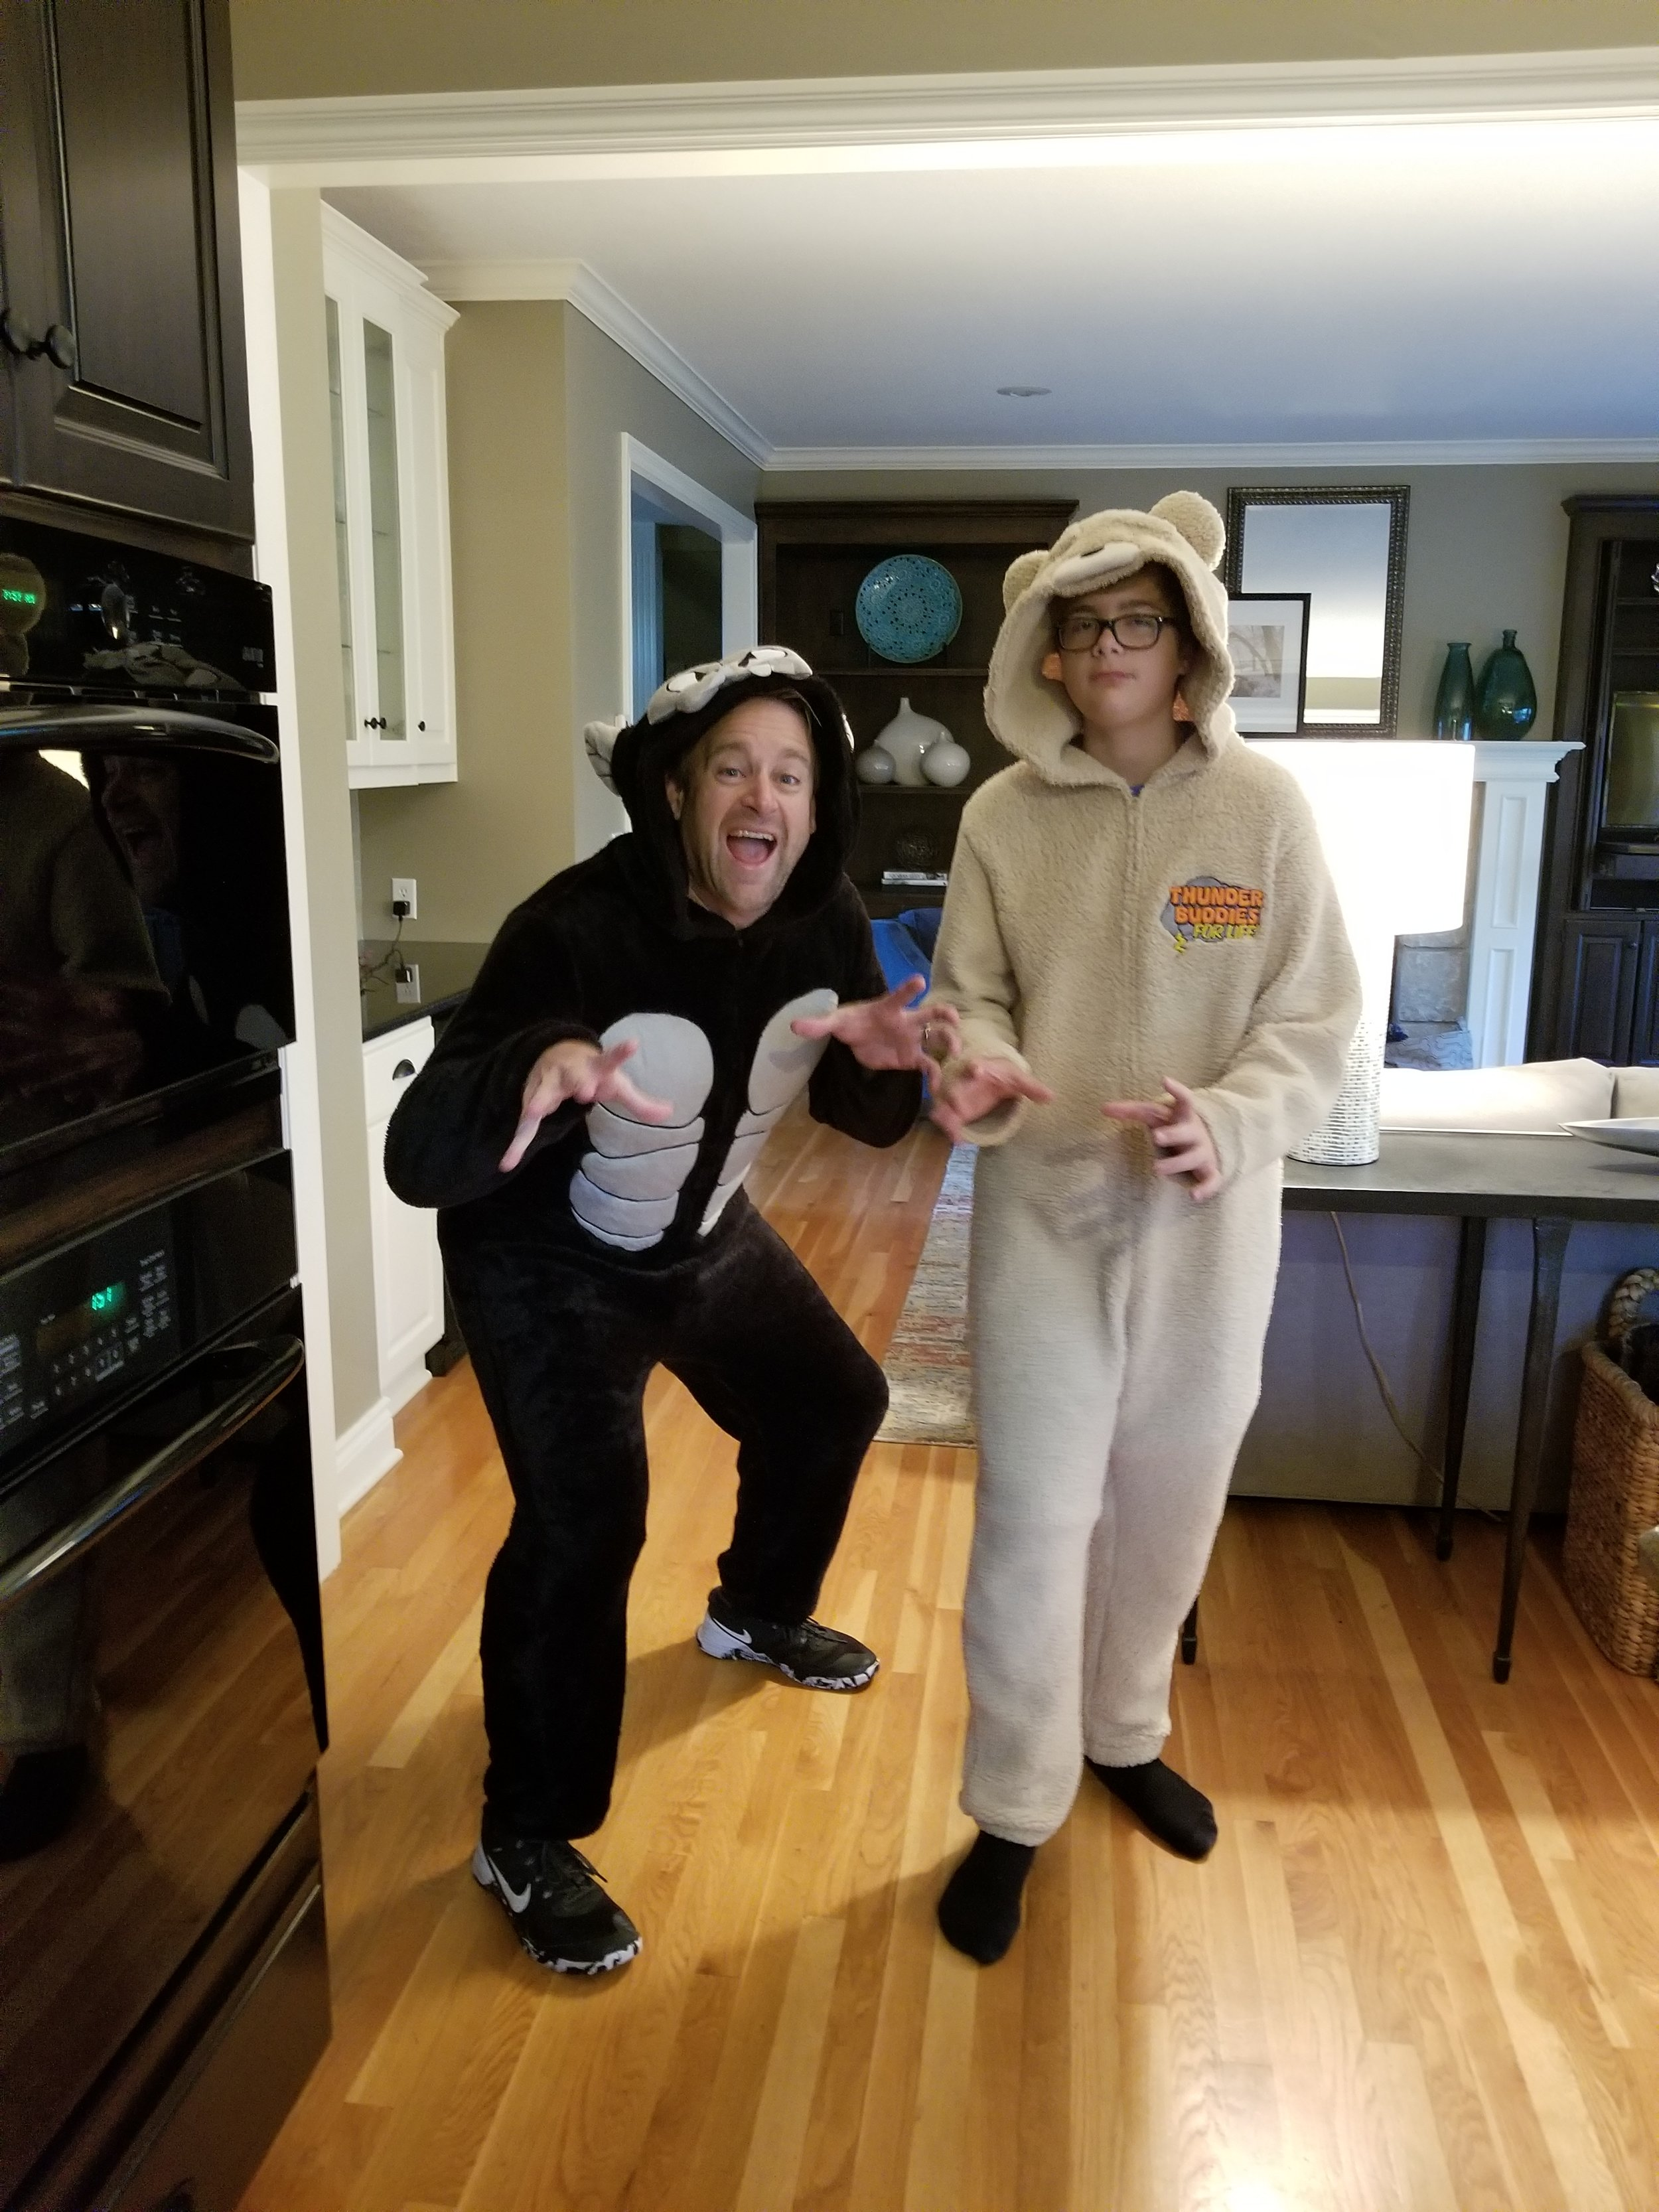 Dressing up for Halloween